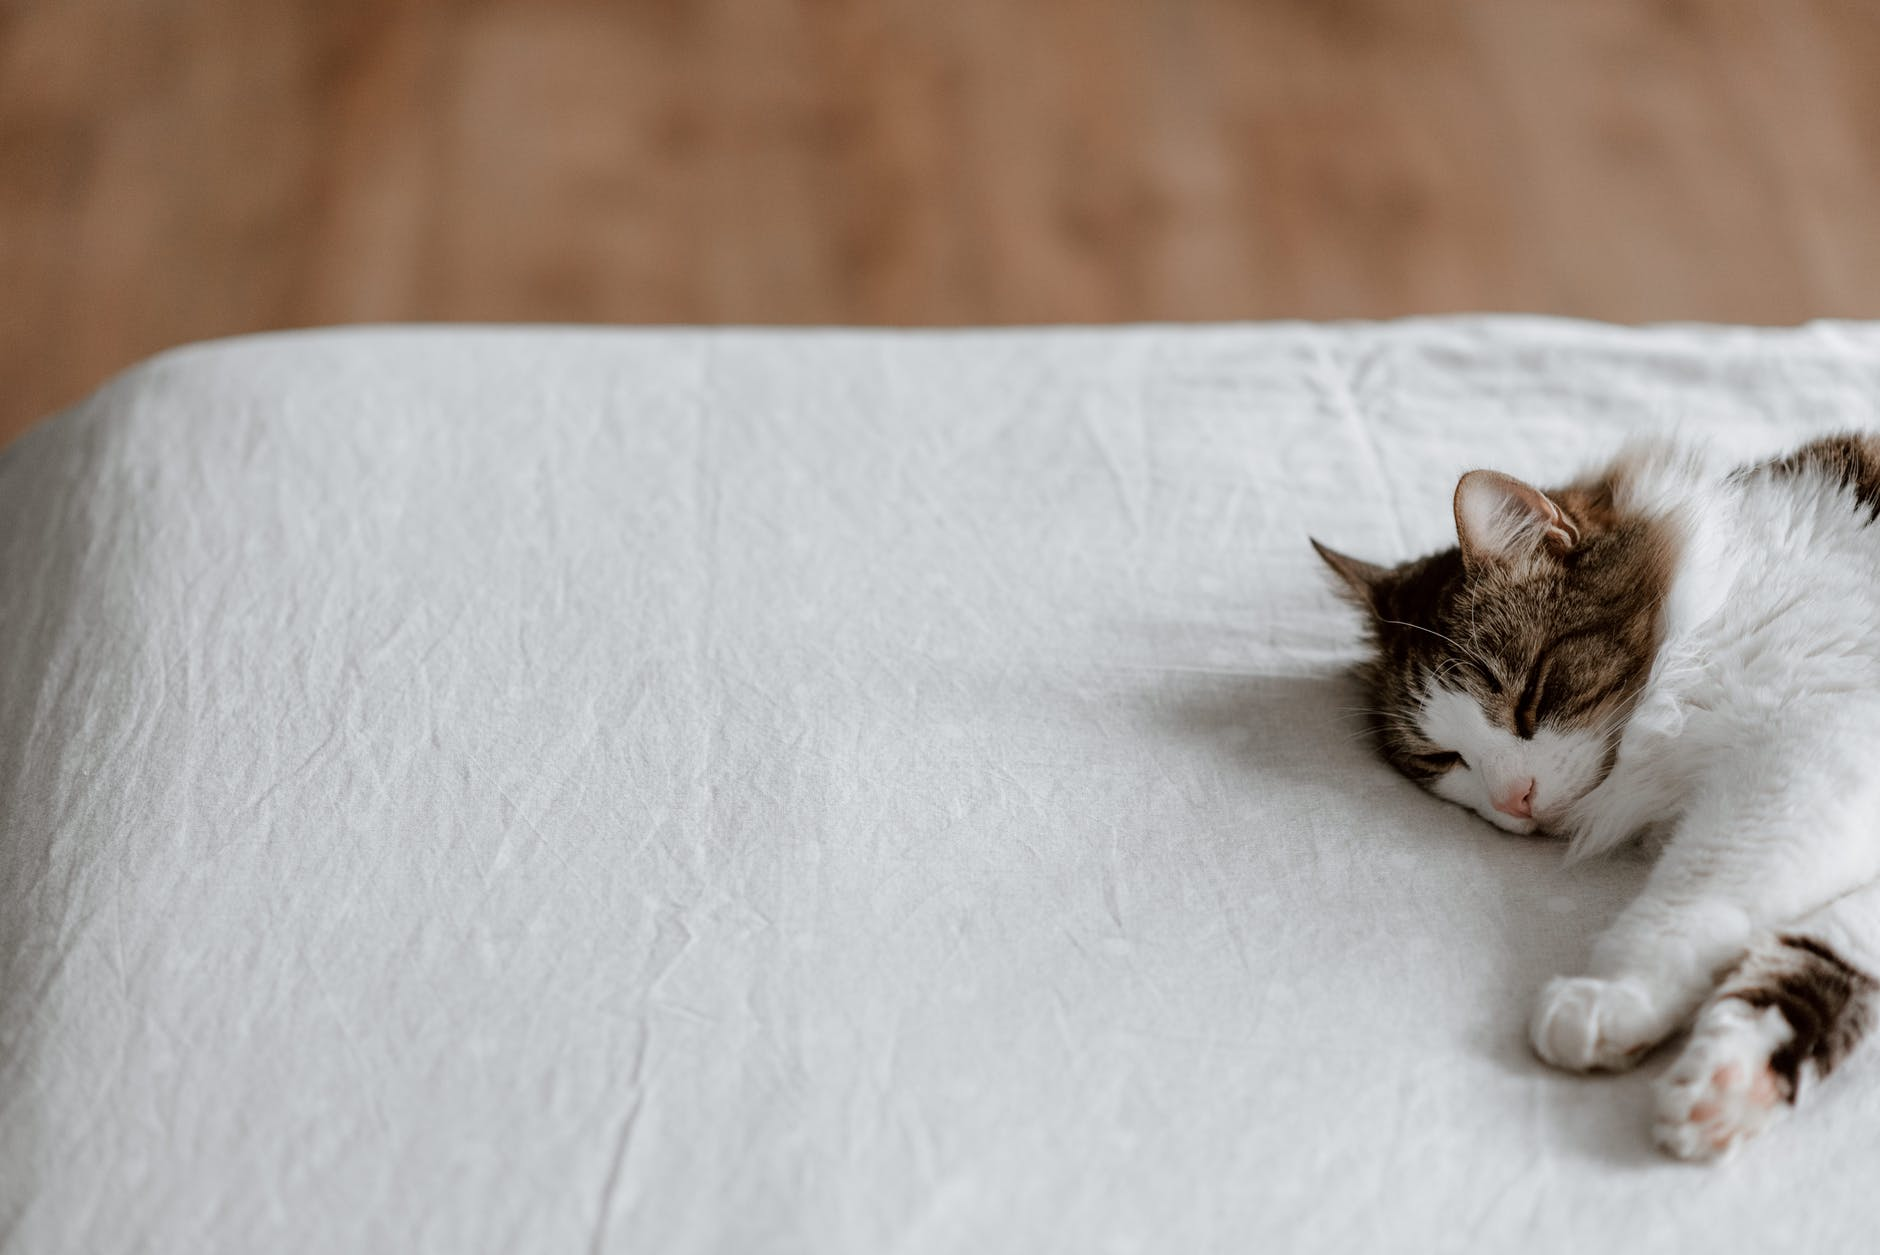 lazy cat sleeping on soft bed at home